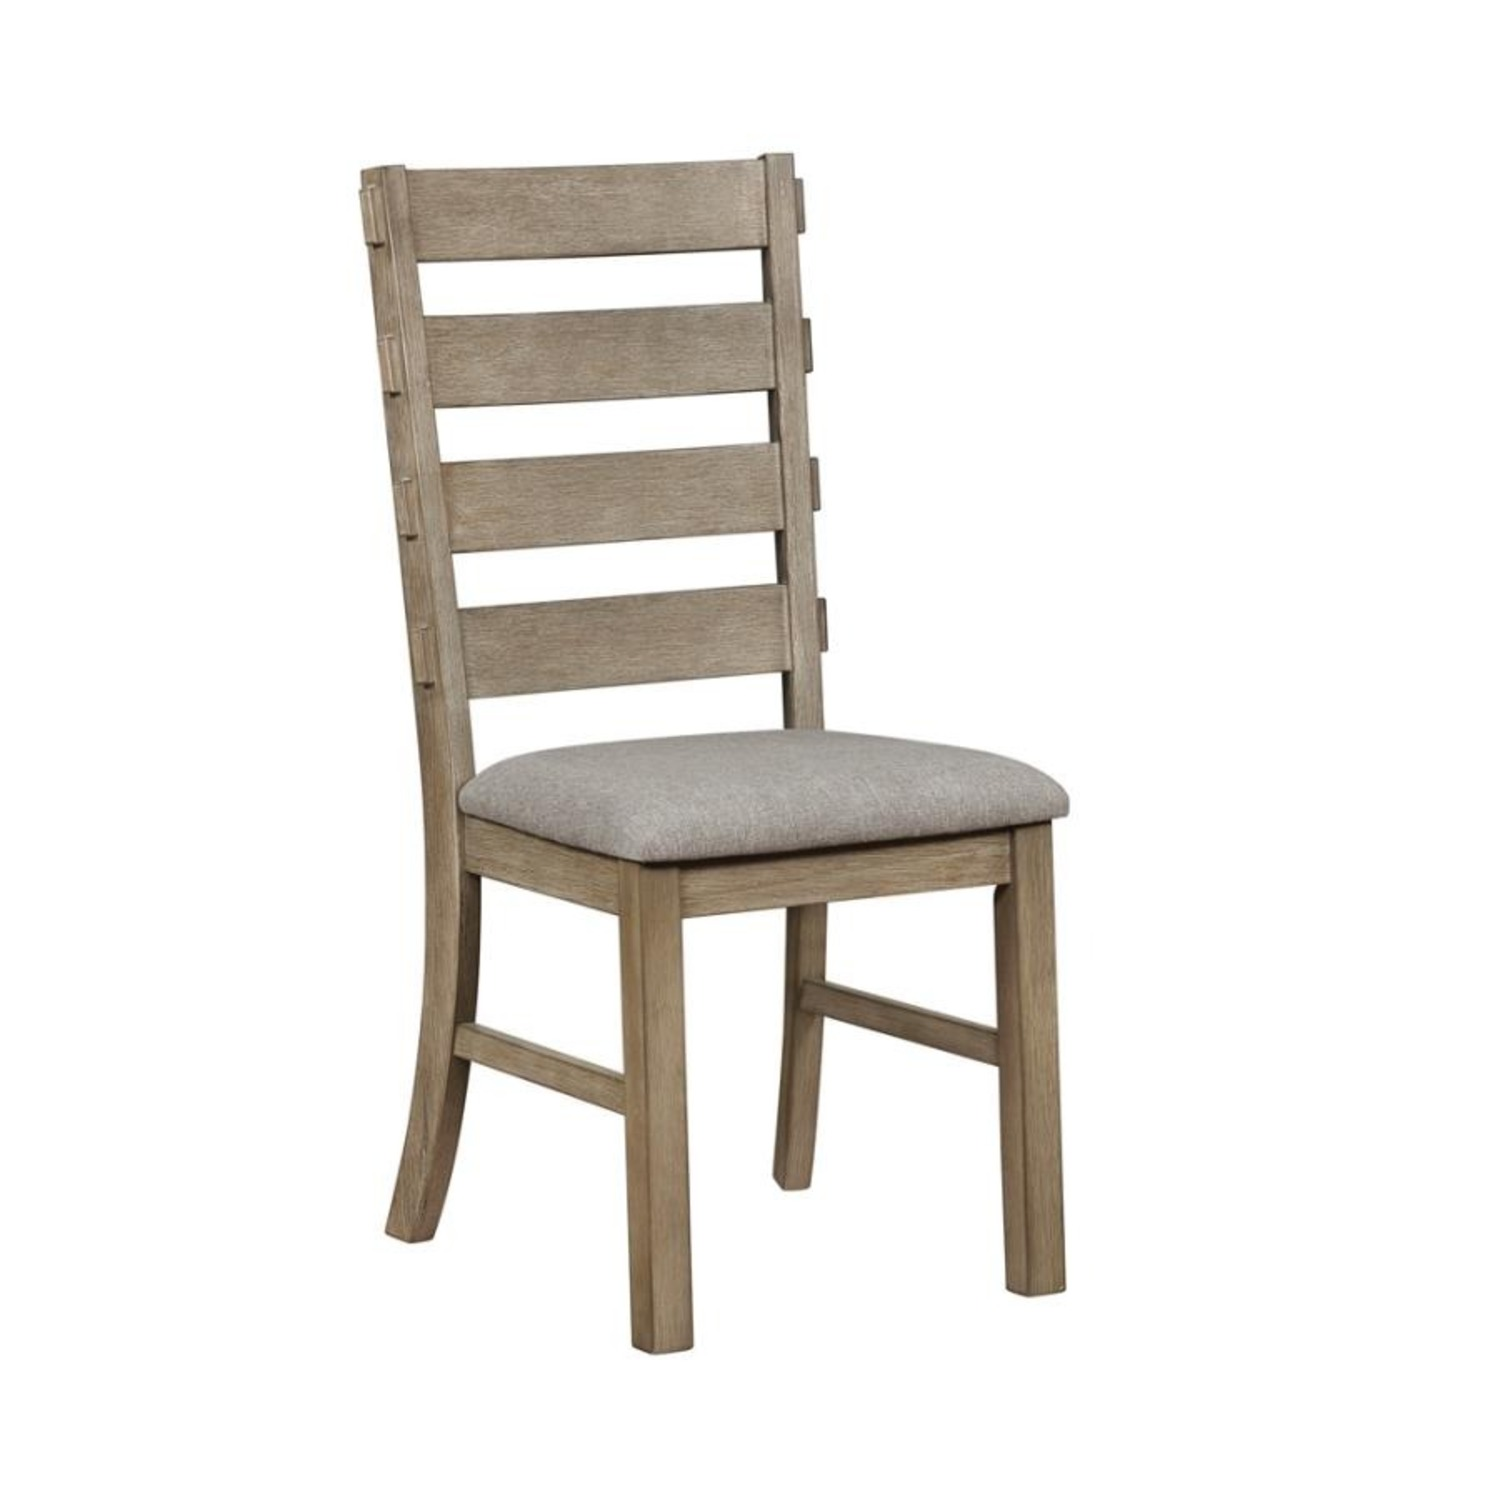 Rustic Dining Chair In Vineyard Oak Finish - image-0